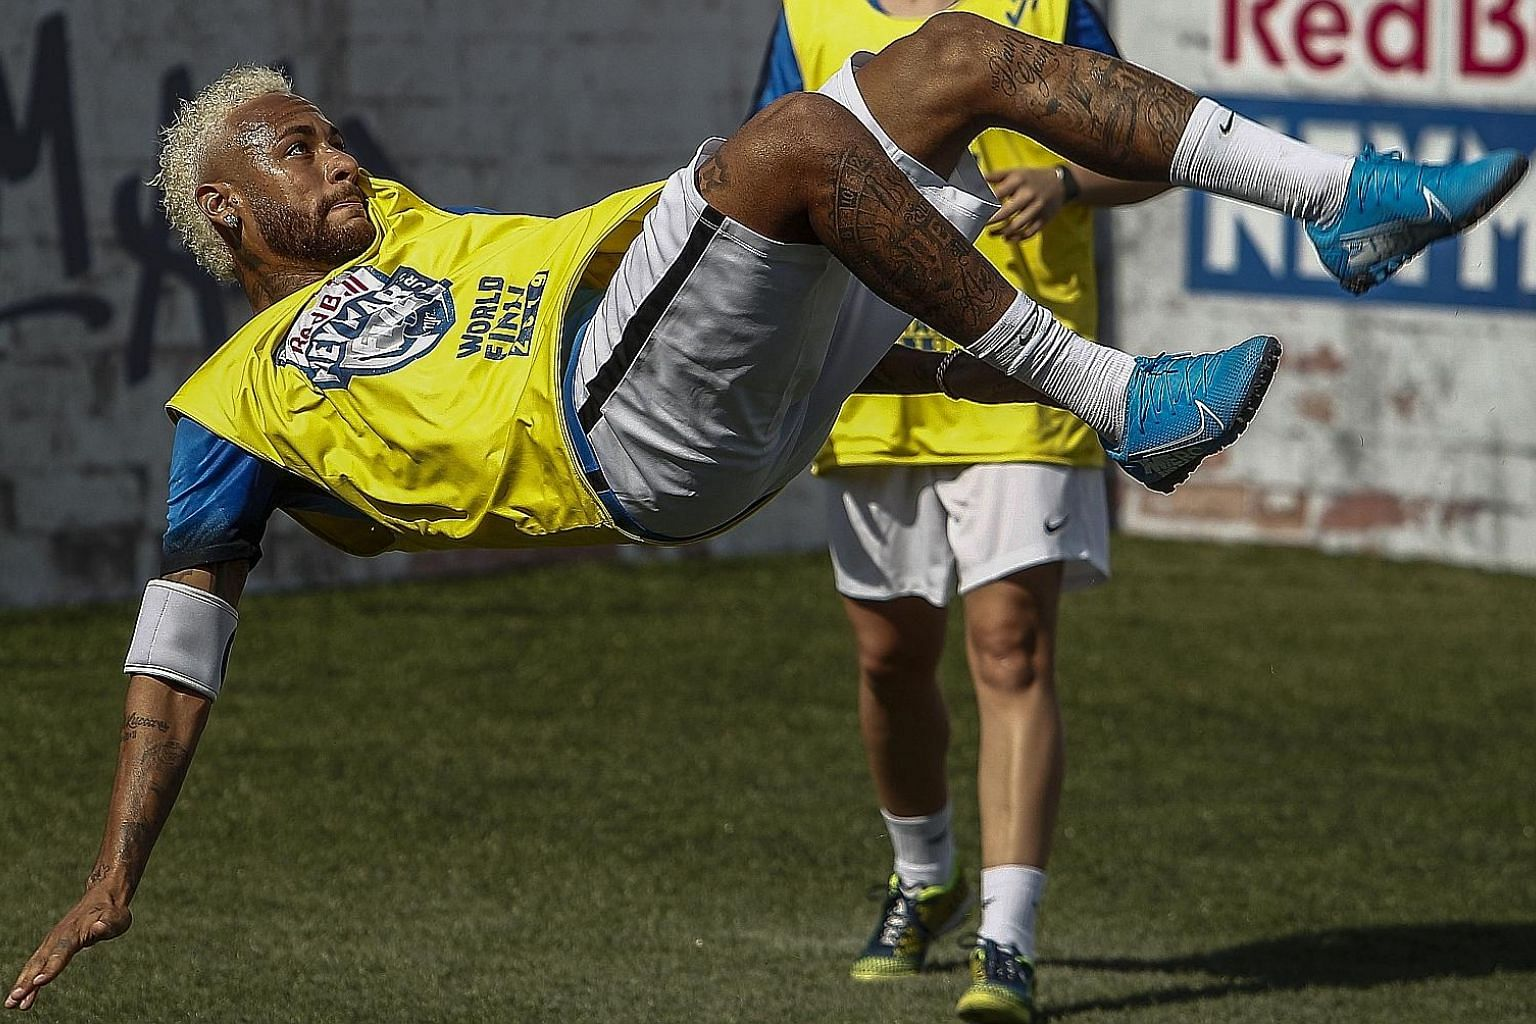 Neymar playing in a five-a-side football tournament for his charity, Neymar Junior Project Institute, in Sao Paulo on Saturday. The Brazilian missed his club Paris Saint-Germain's first training session last Monday, insisting that he had a prior agre